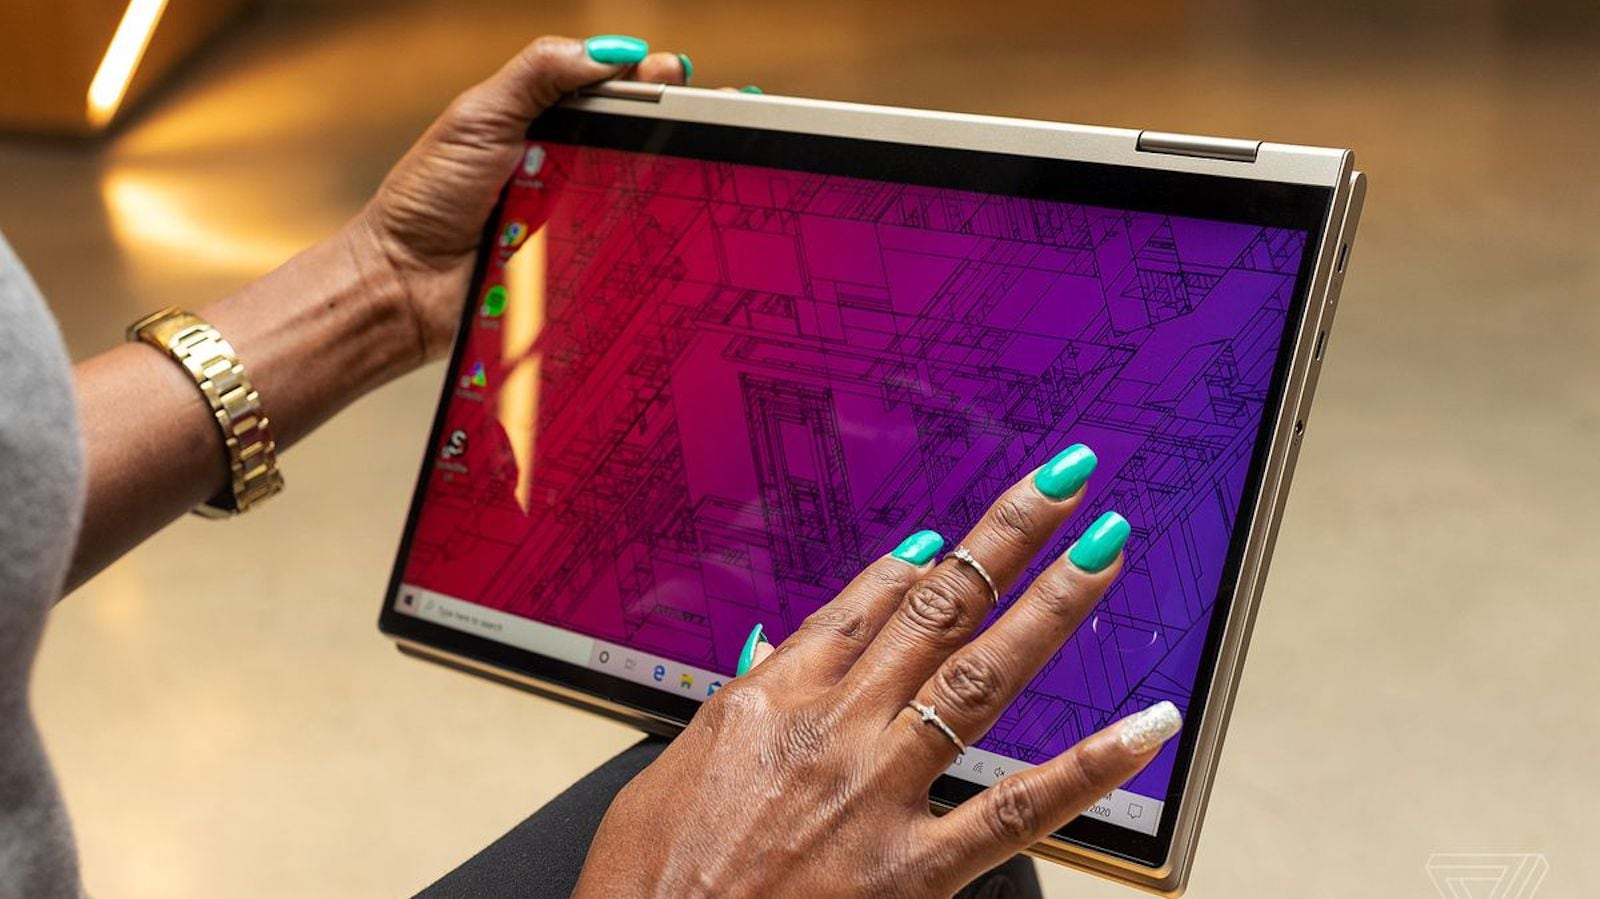 Lenovo Yoga C740 Responsive Touchscreen Laptop looks sleek at an affordable price